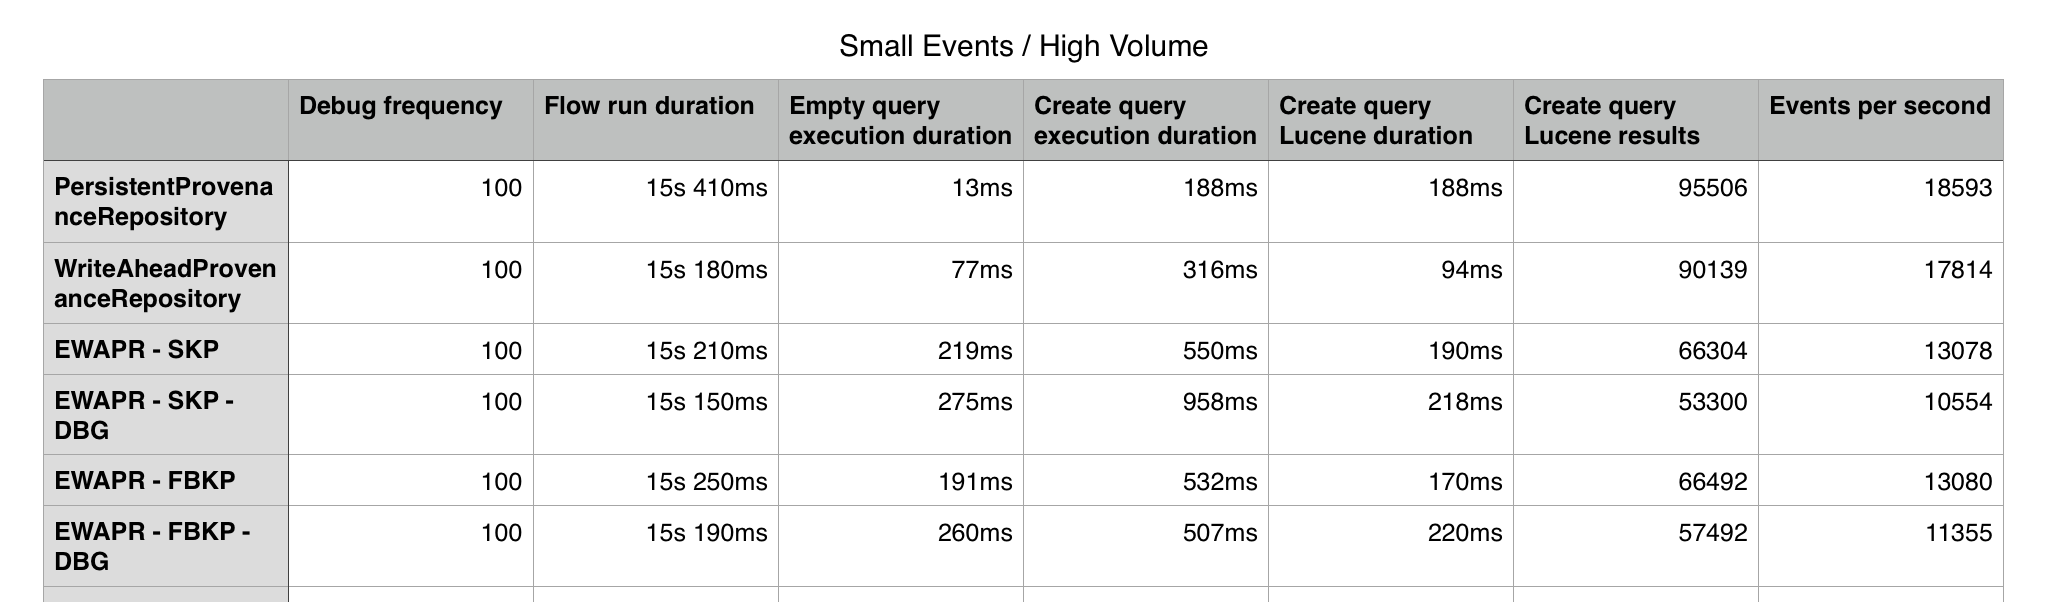 Small Event High Volume benchmarks